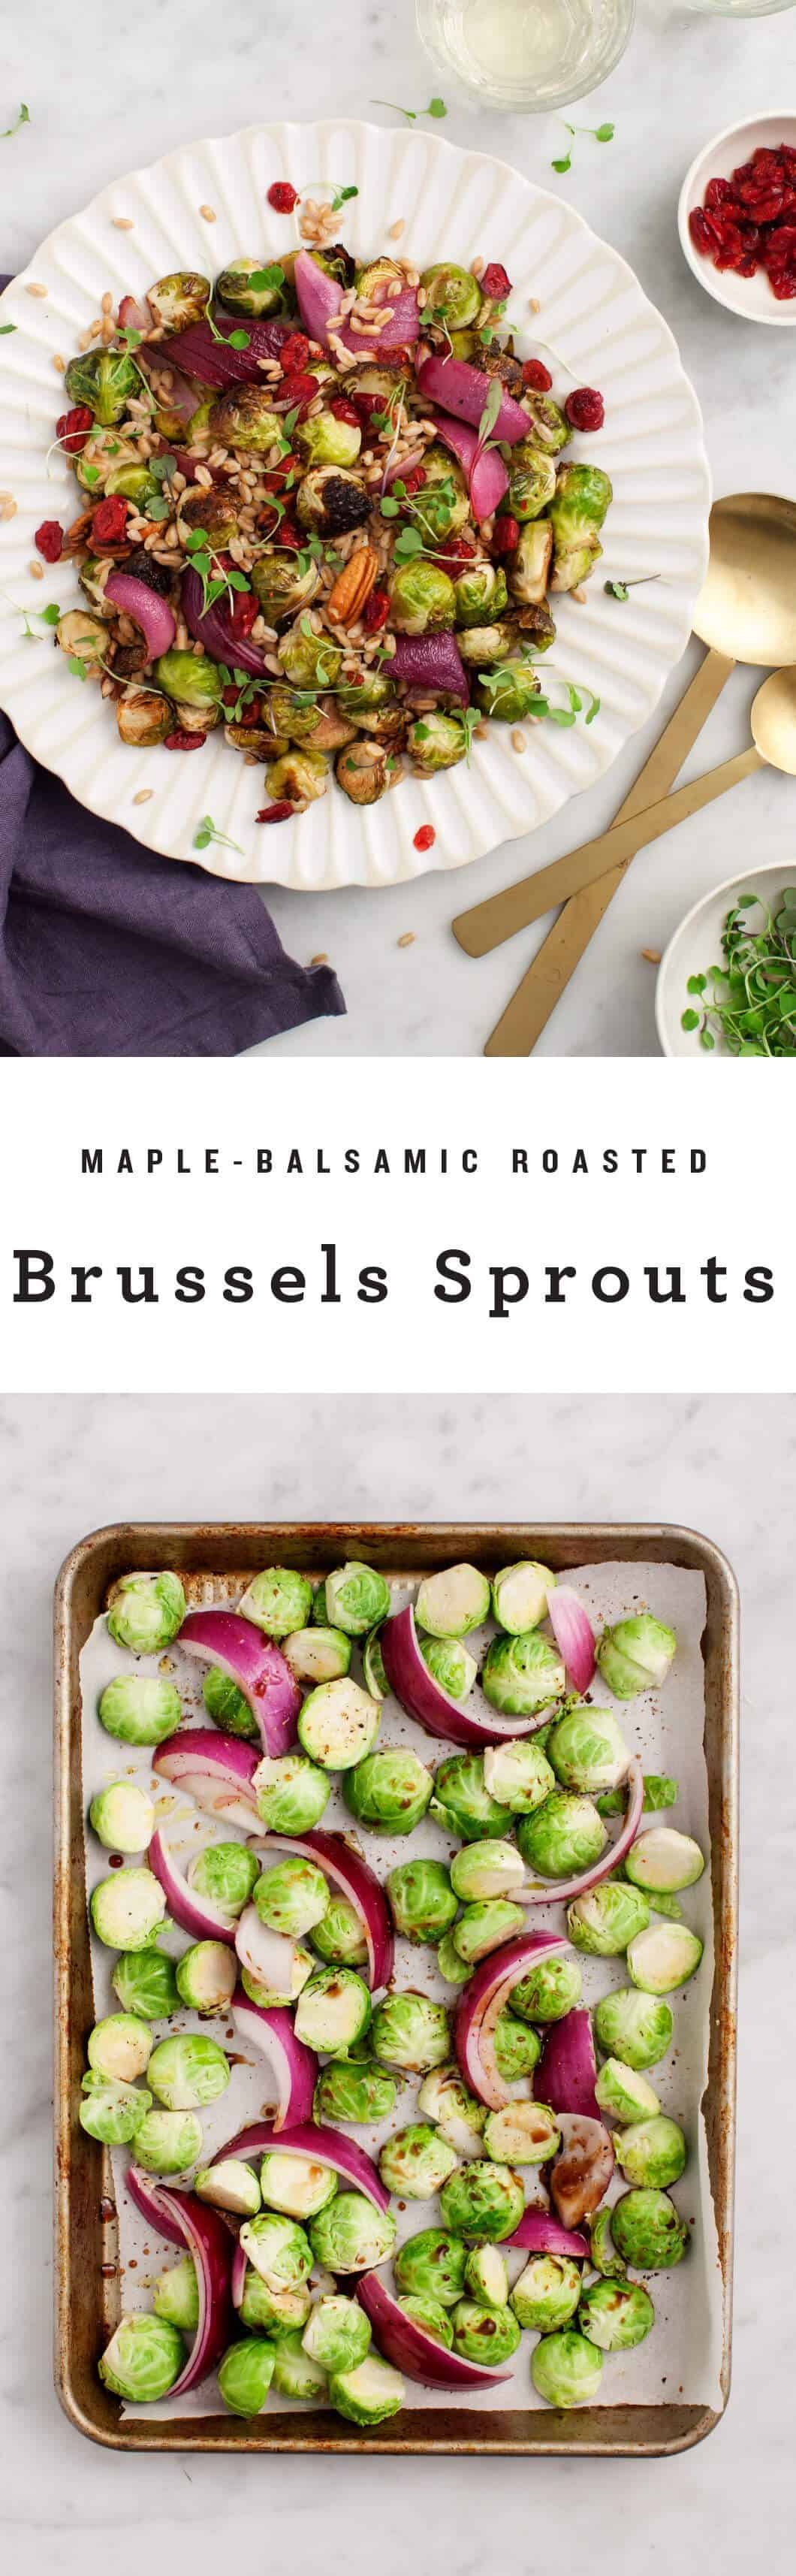 Maple-Balsamic Roasted Brussels Sprouts